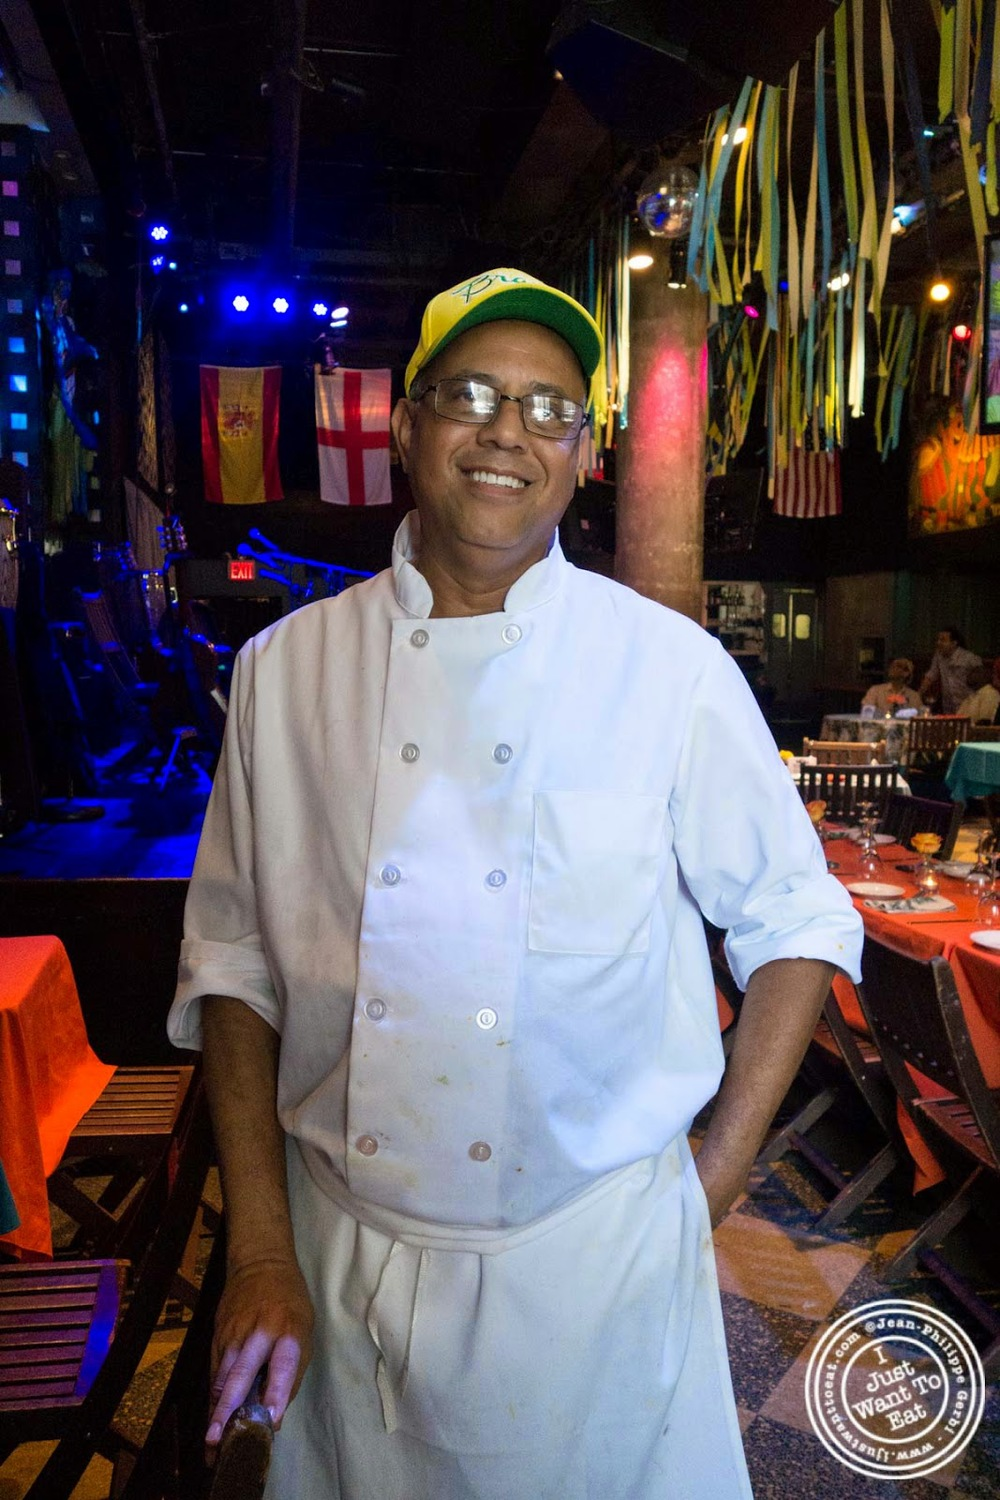 Chef Jorge Lima at Sounds Of Brazil SOB's in NY, New York